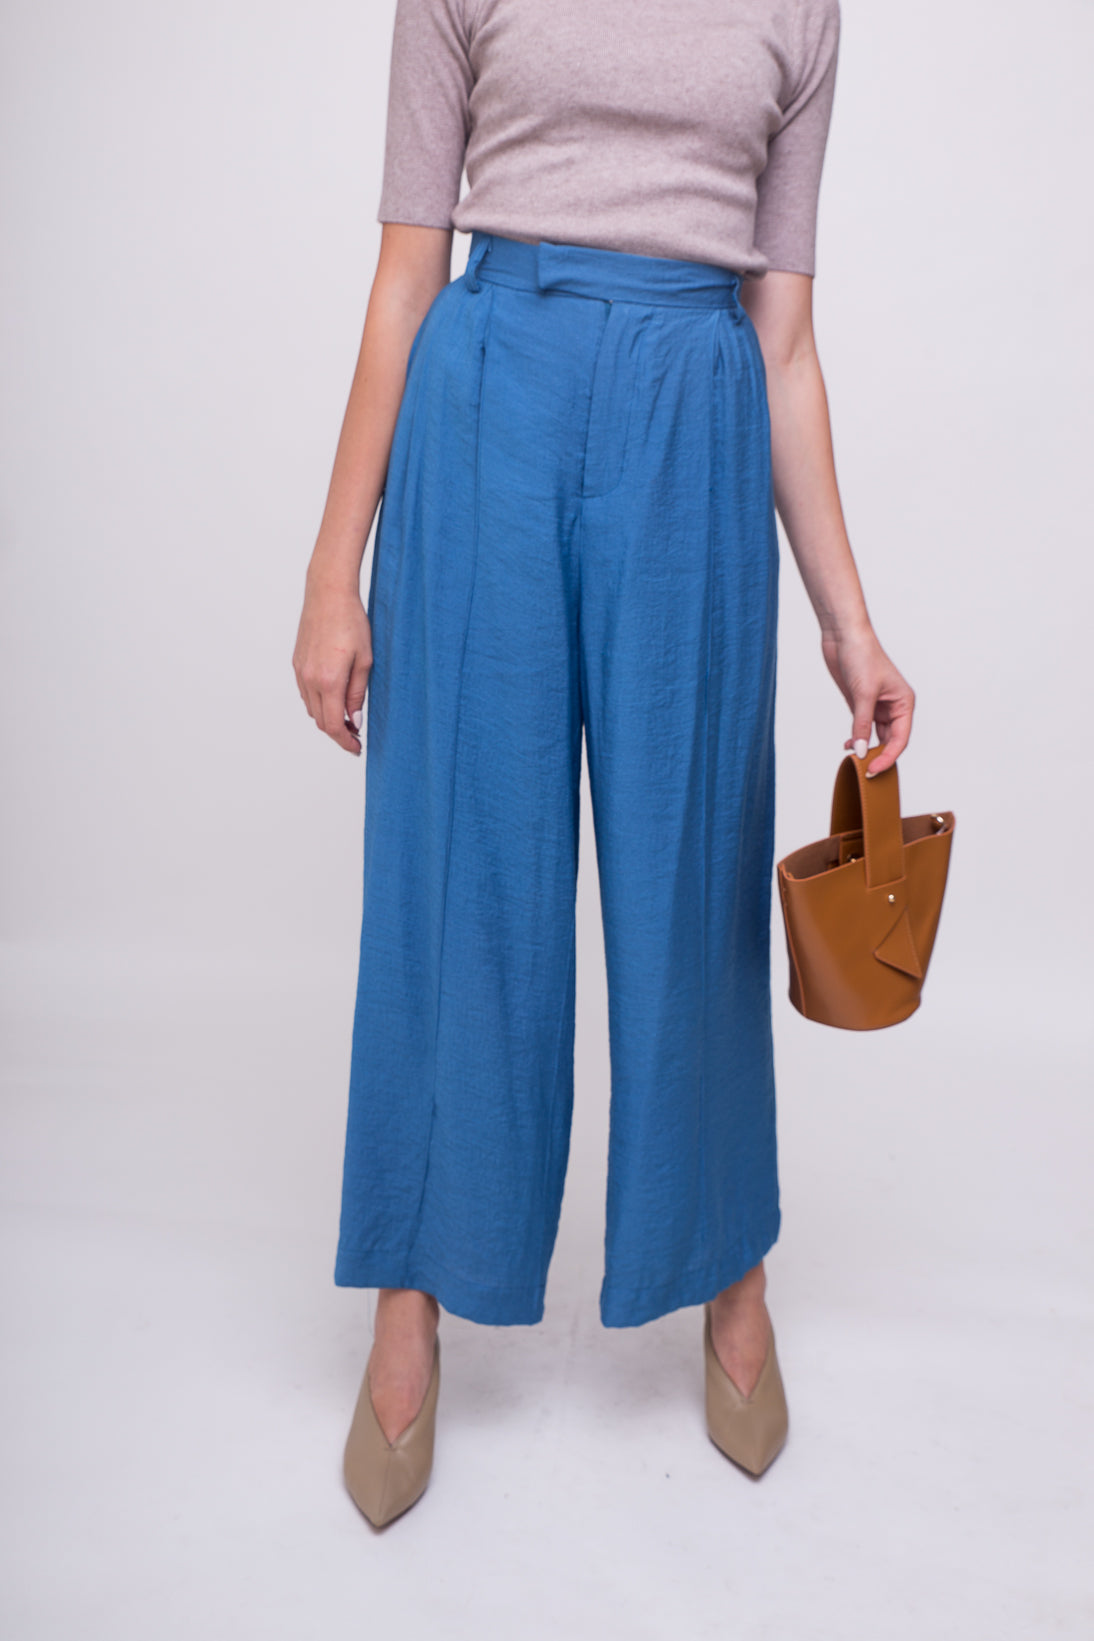 Casual, chic, smart and elegant high waist dress pants.